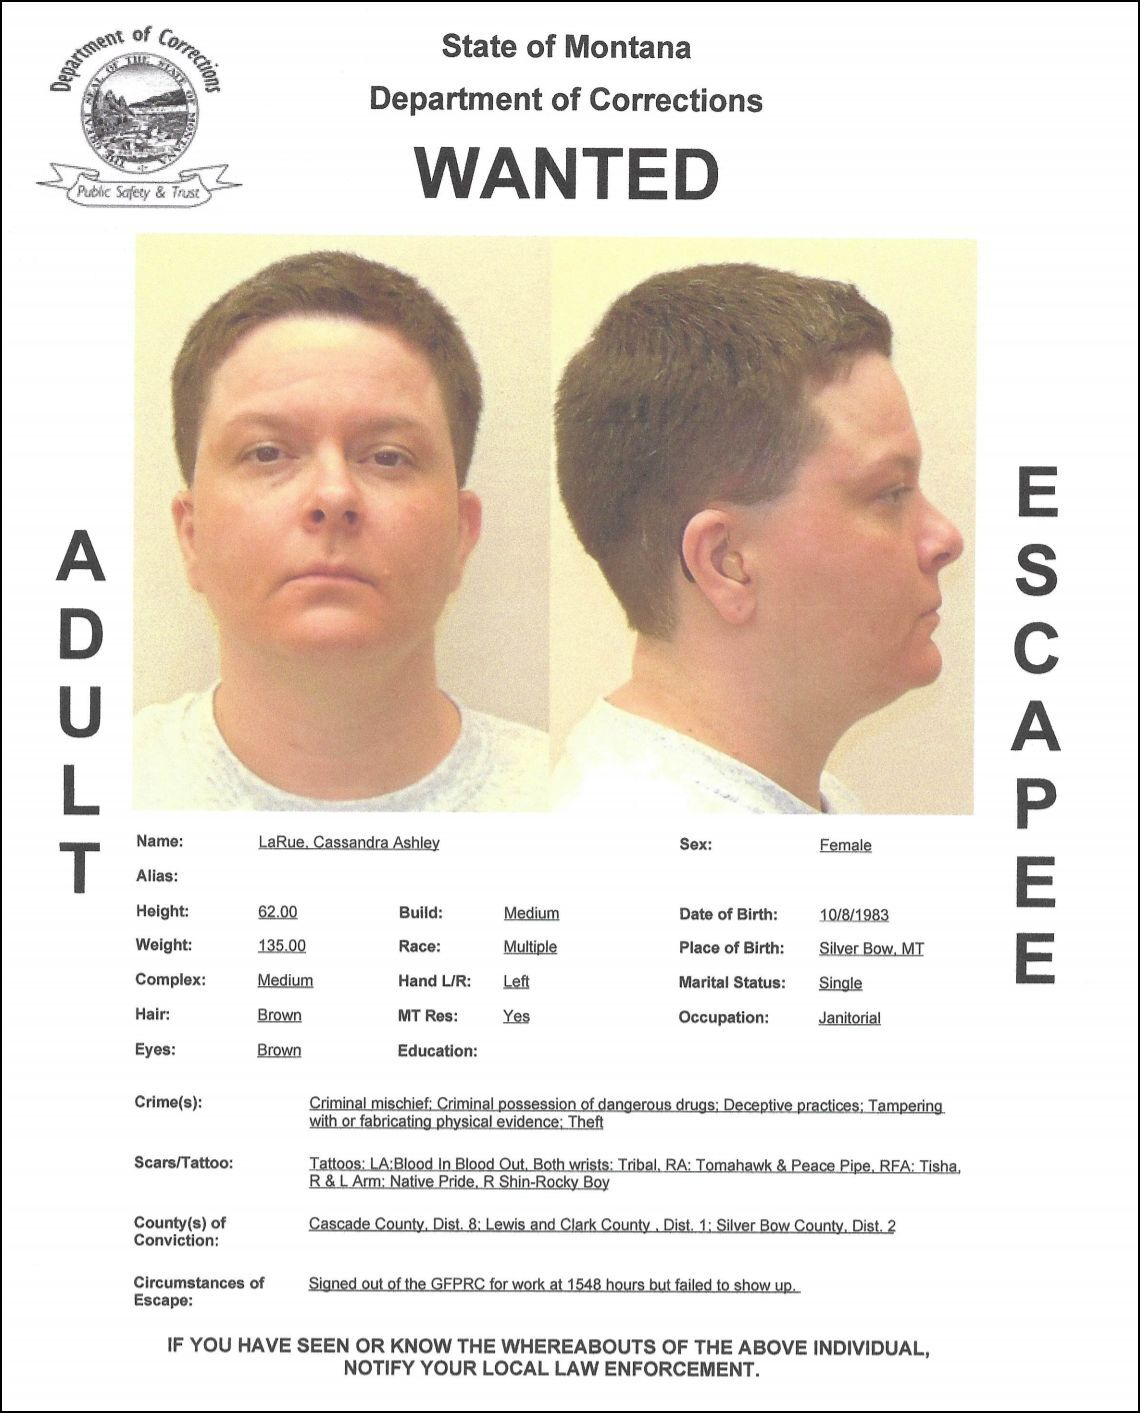 Cassandra Ashley LaRue has been reported as an escapee/walkaway from the Great Falls Pre-Release Center.